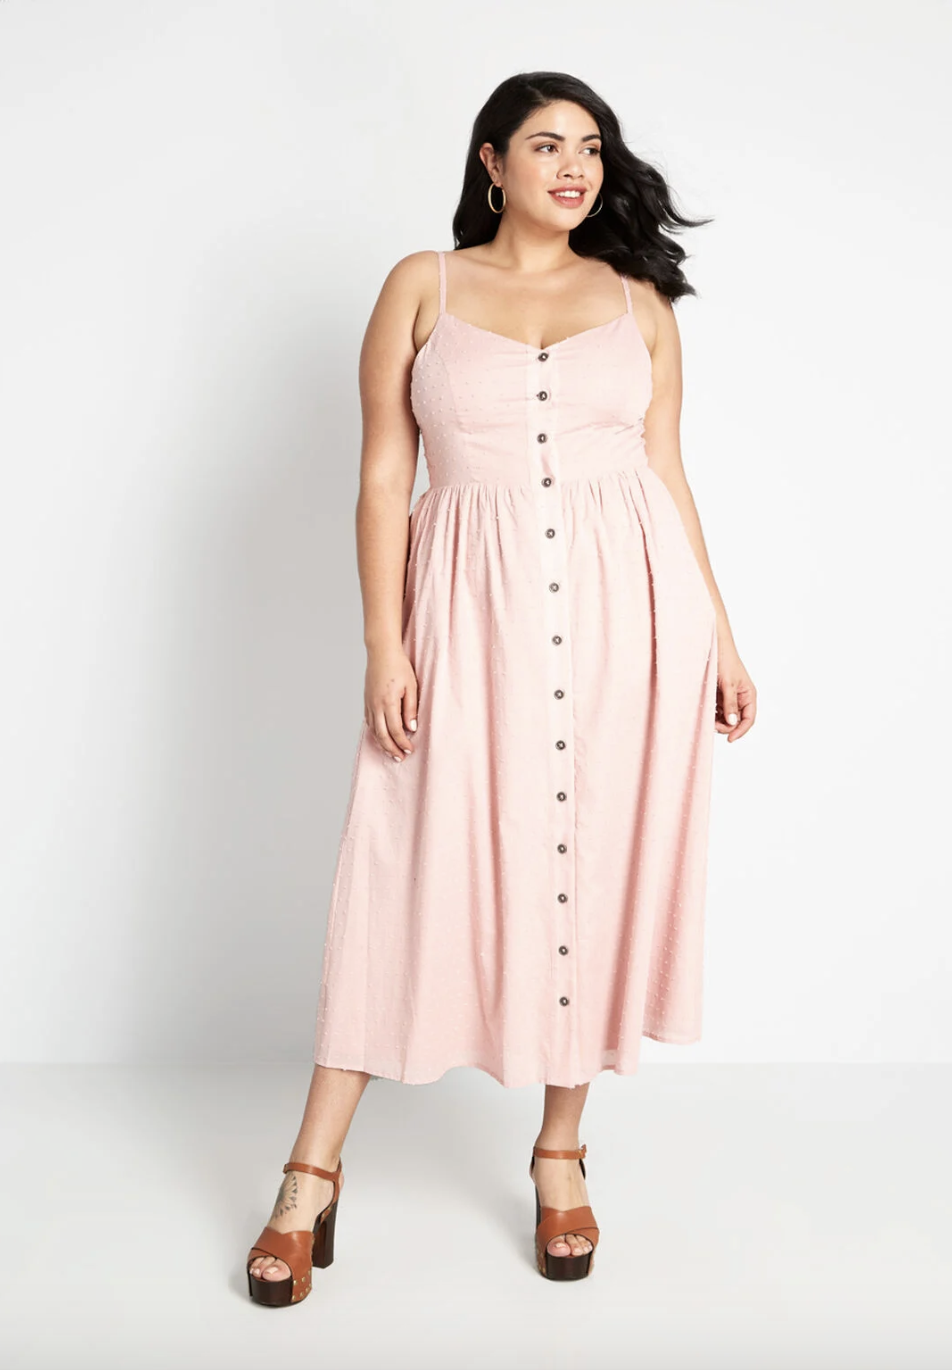 A model in a maxi dress with straps that buttons all the way up